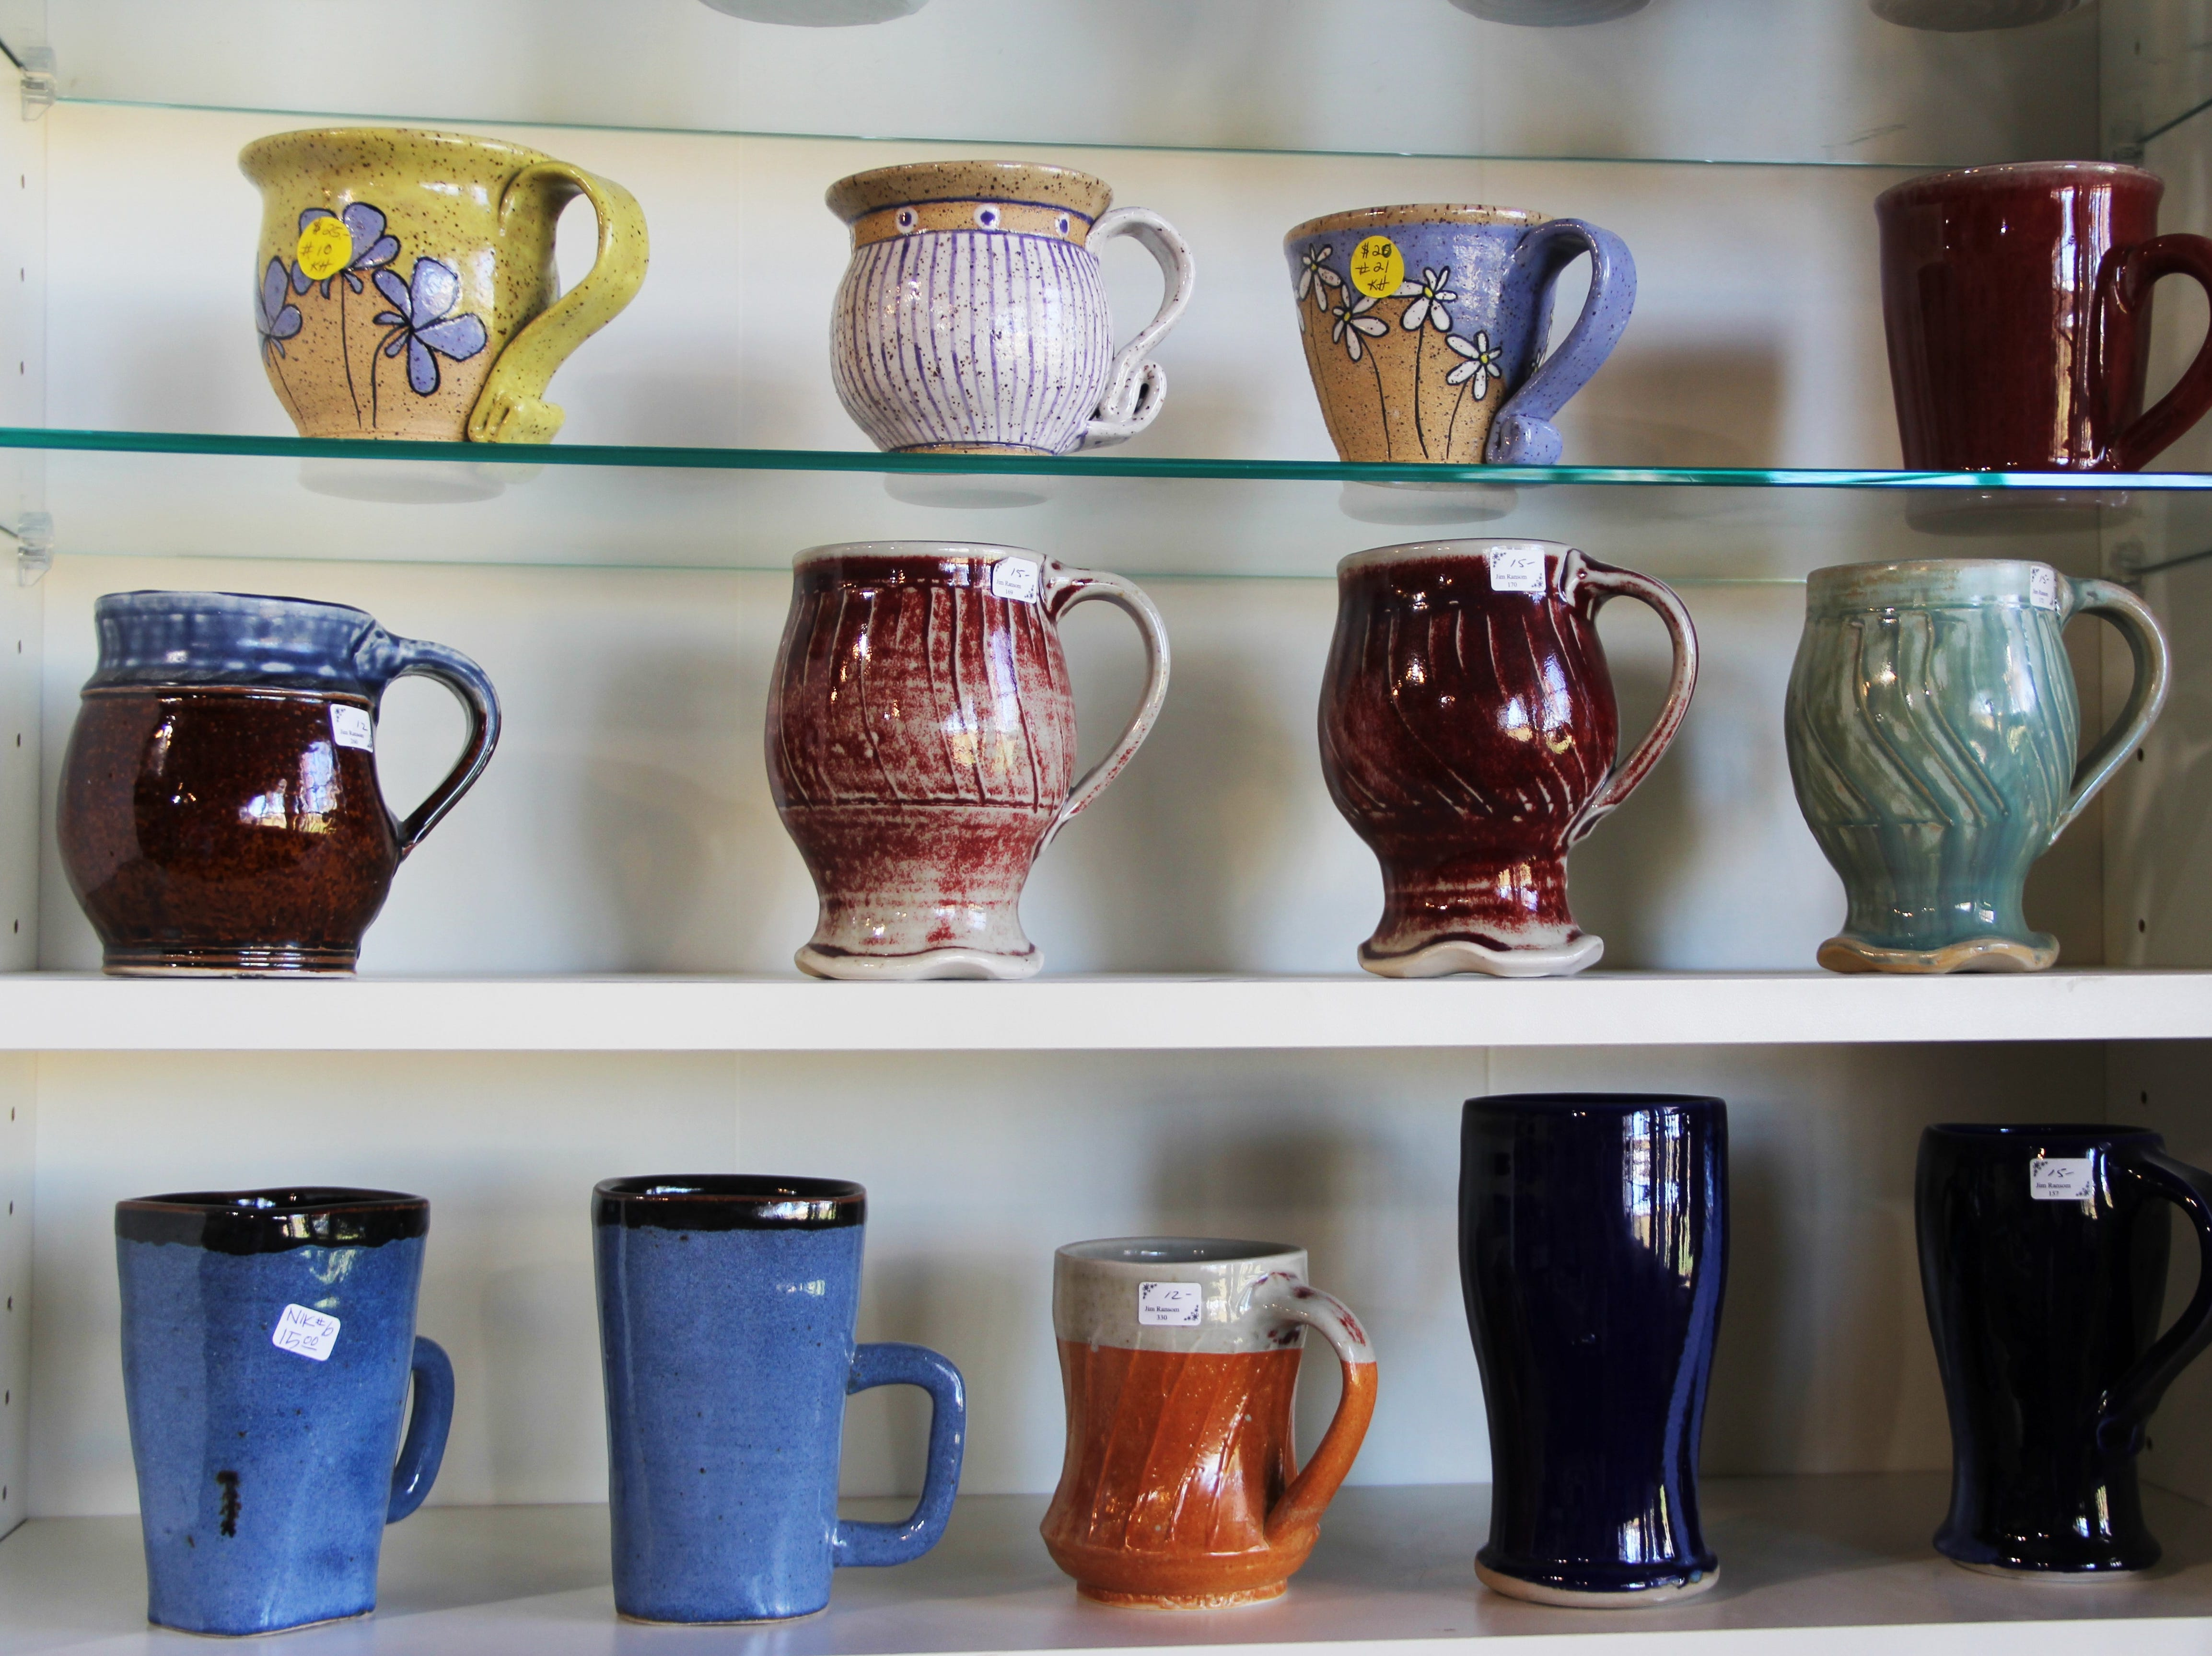 Rows of mugs at the Willamette Art Center's Empty Bowls fundraiser on Saturday, Nov. 17. Every dollar spent at the fundraiser provides three meals to members of the community.